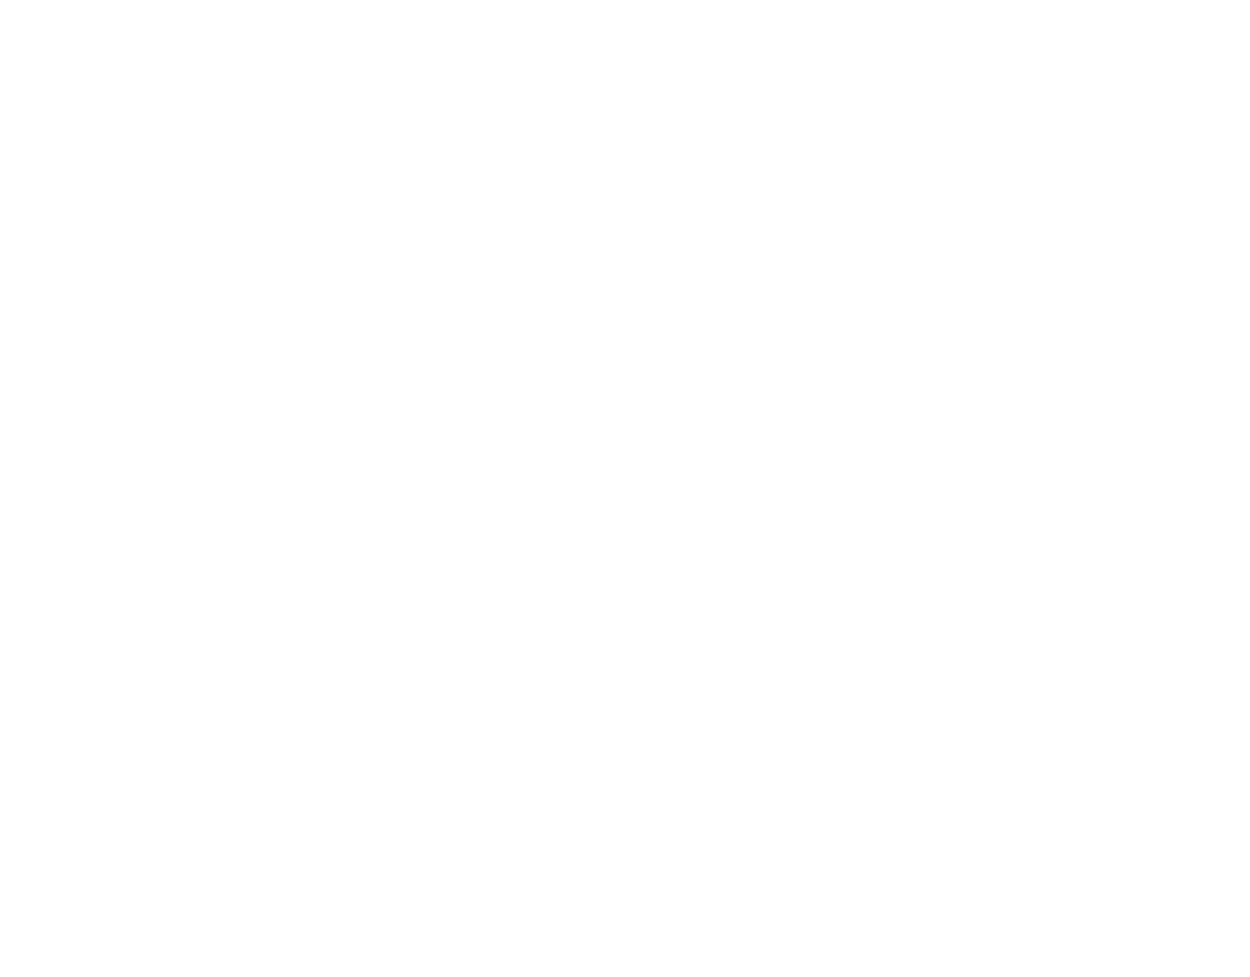 Inovation Travel